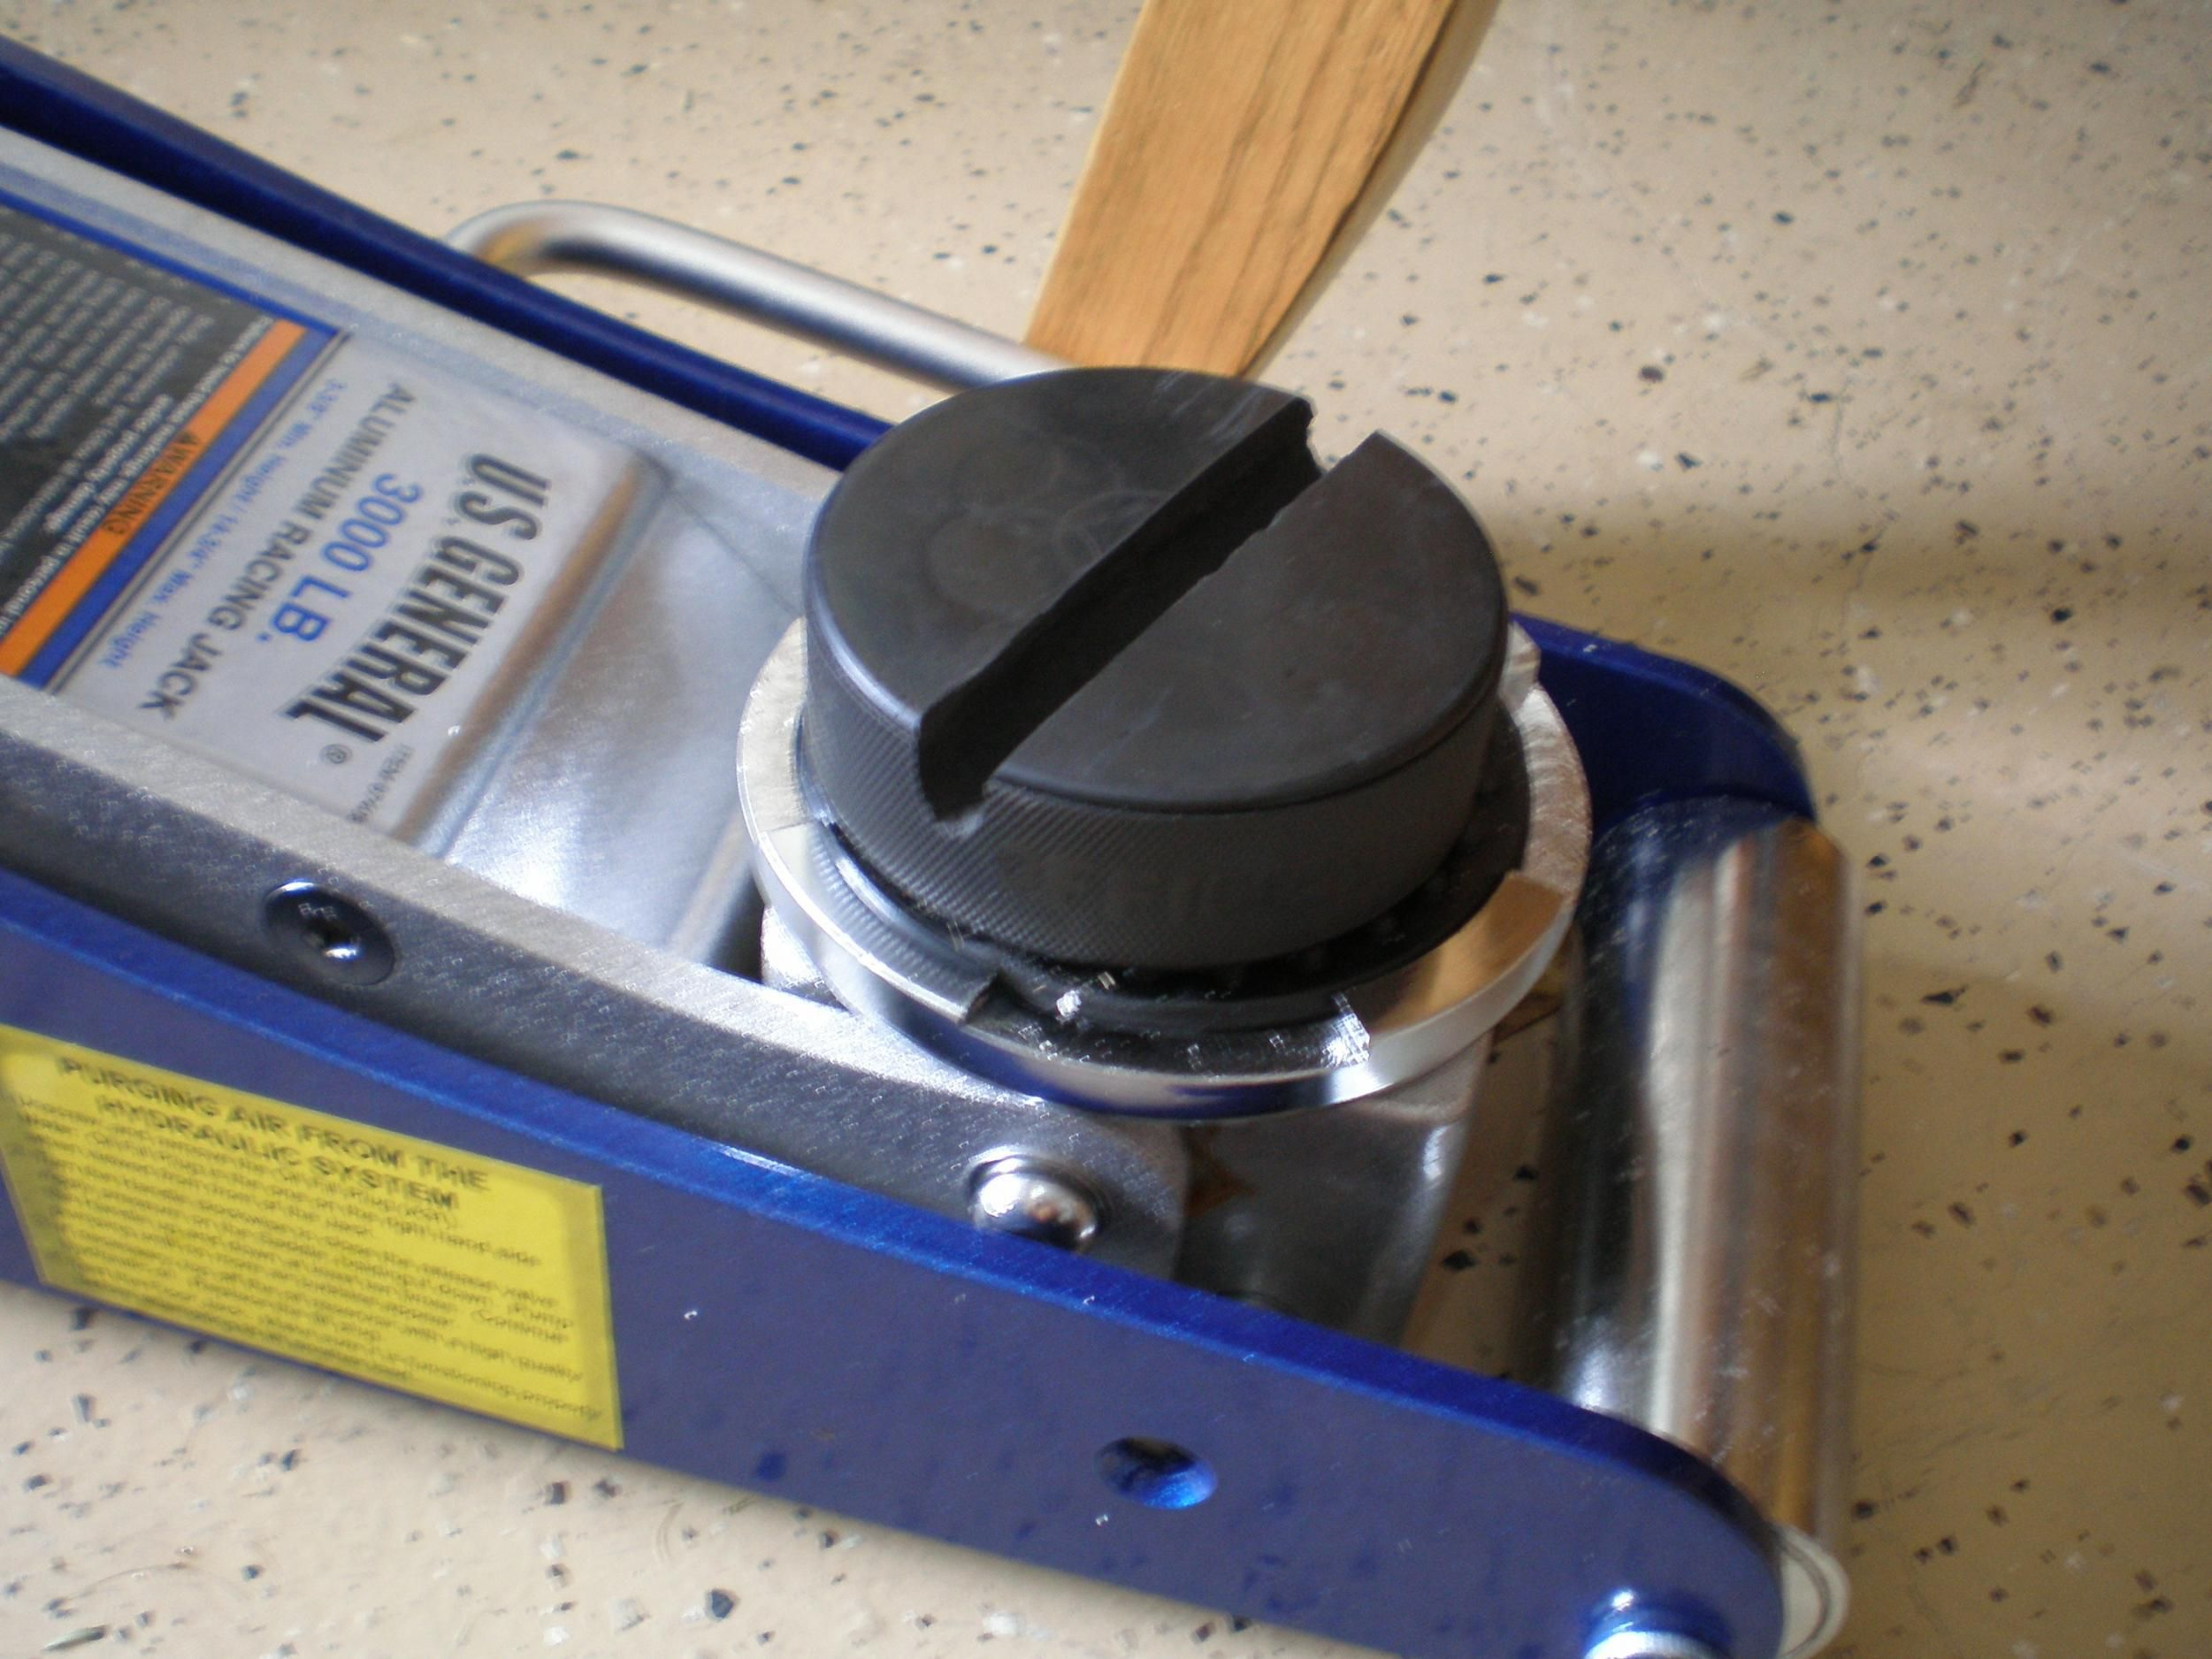 Hockey puck jack adapters jack stands